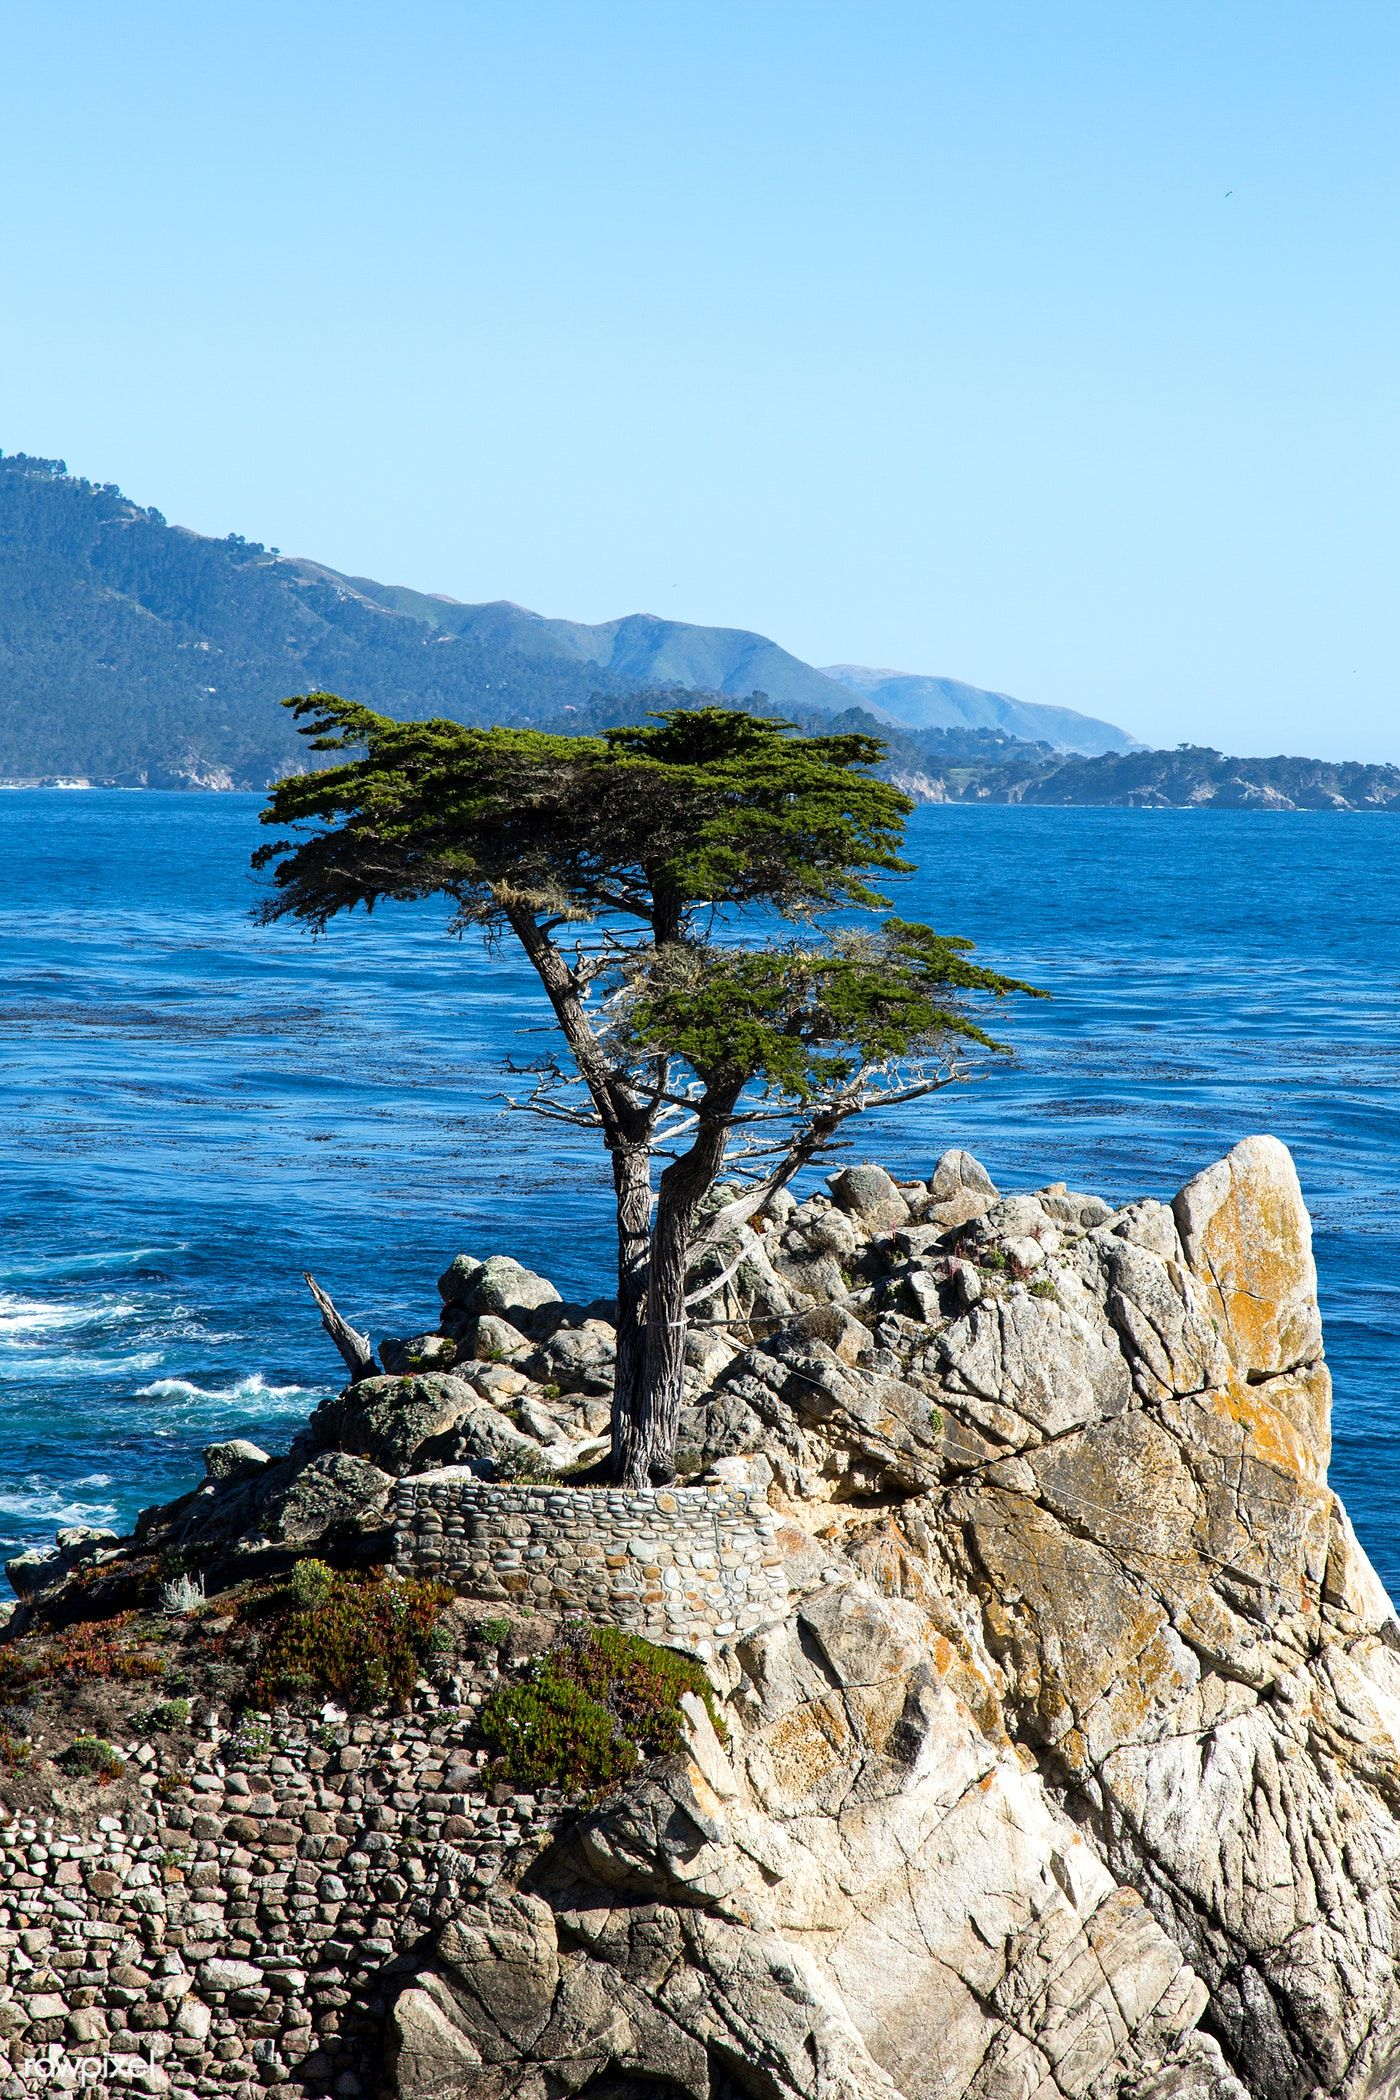 Lone Cypress On The 17 Mile Drive 17 Mile Drive Is A Scenic Road Through Pacific Grove And Pebb In 2020 California Travel Road Trips Scenic Roads California Coastline